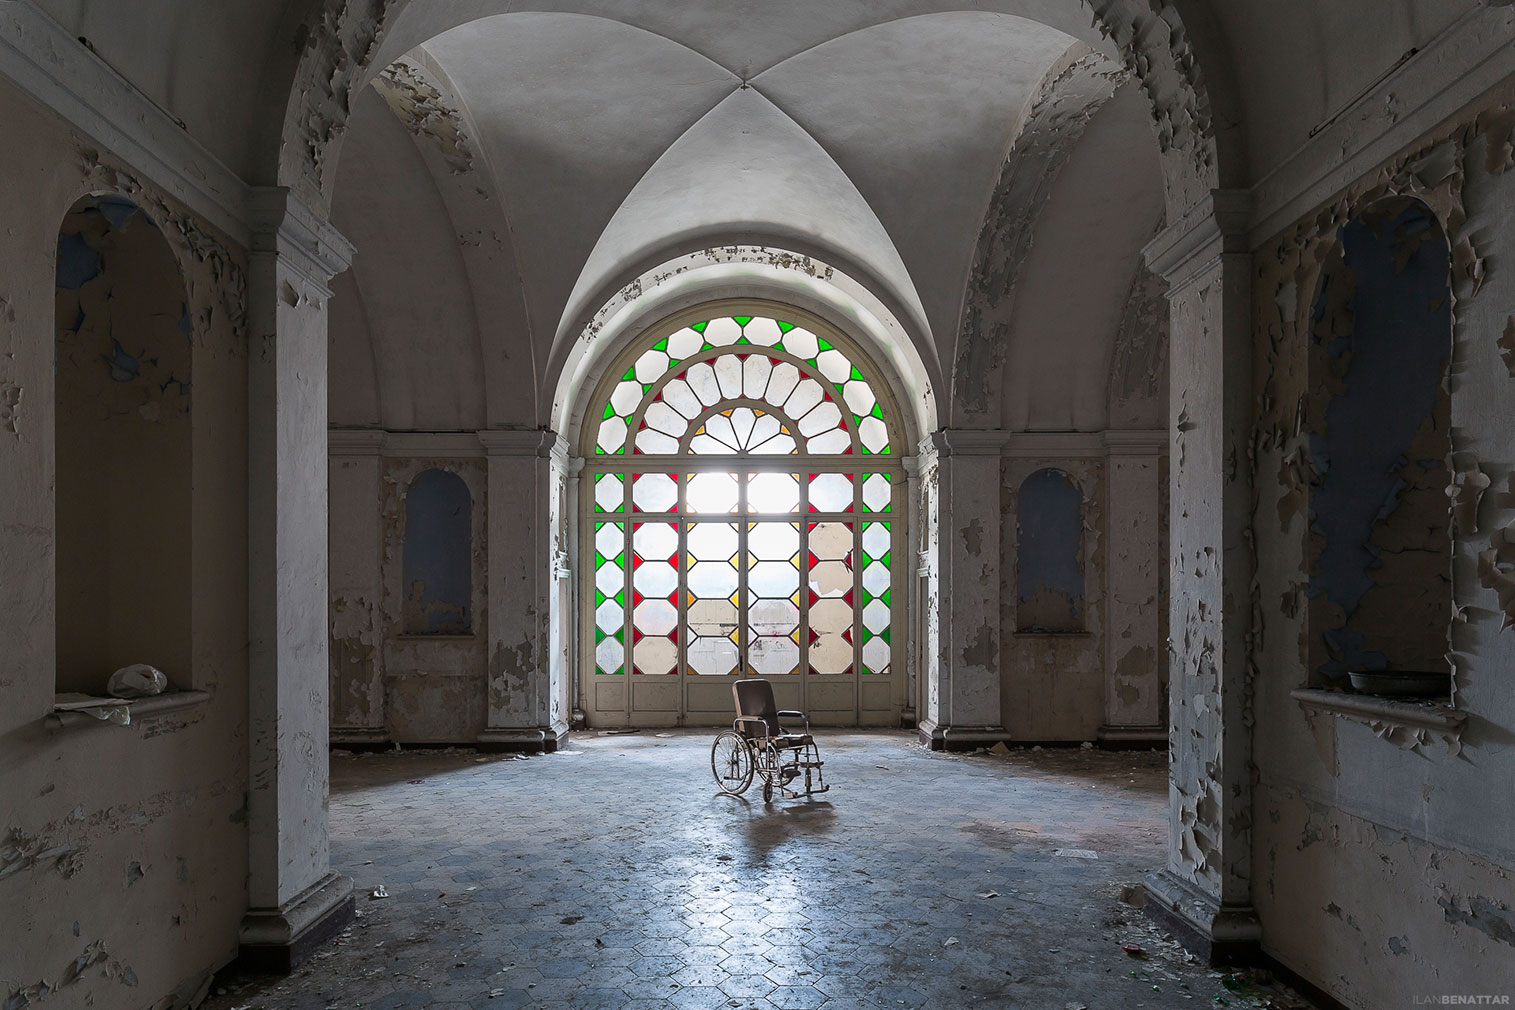 Ilan Benattar's photo essay on abandoned medical centres